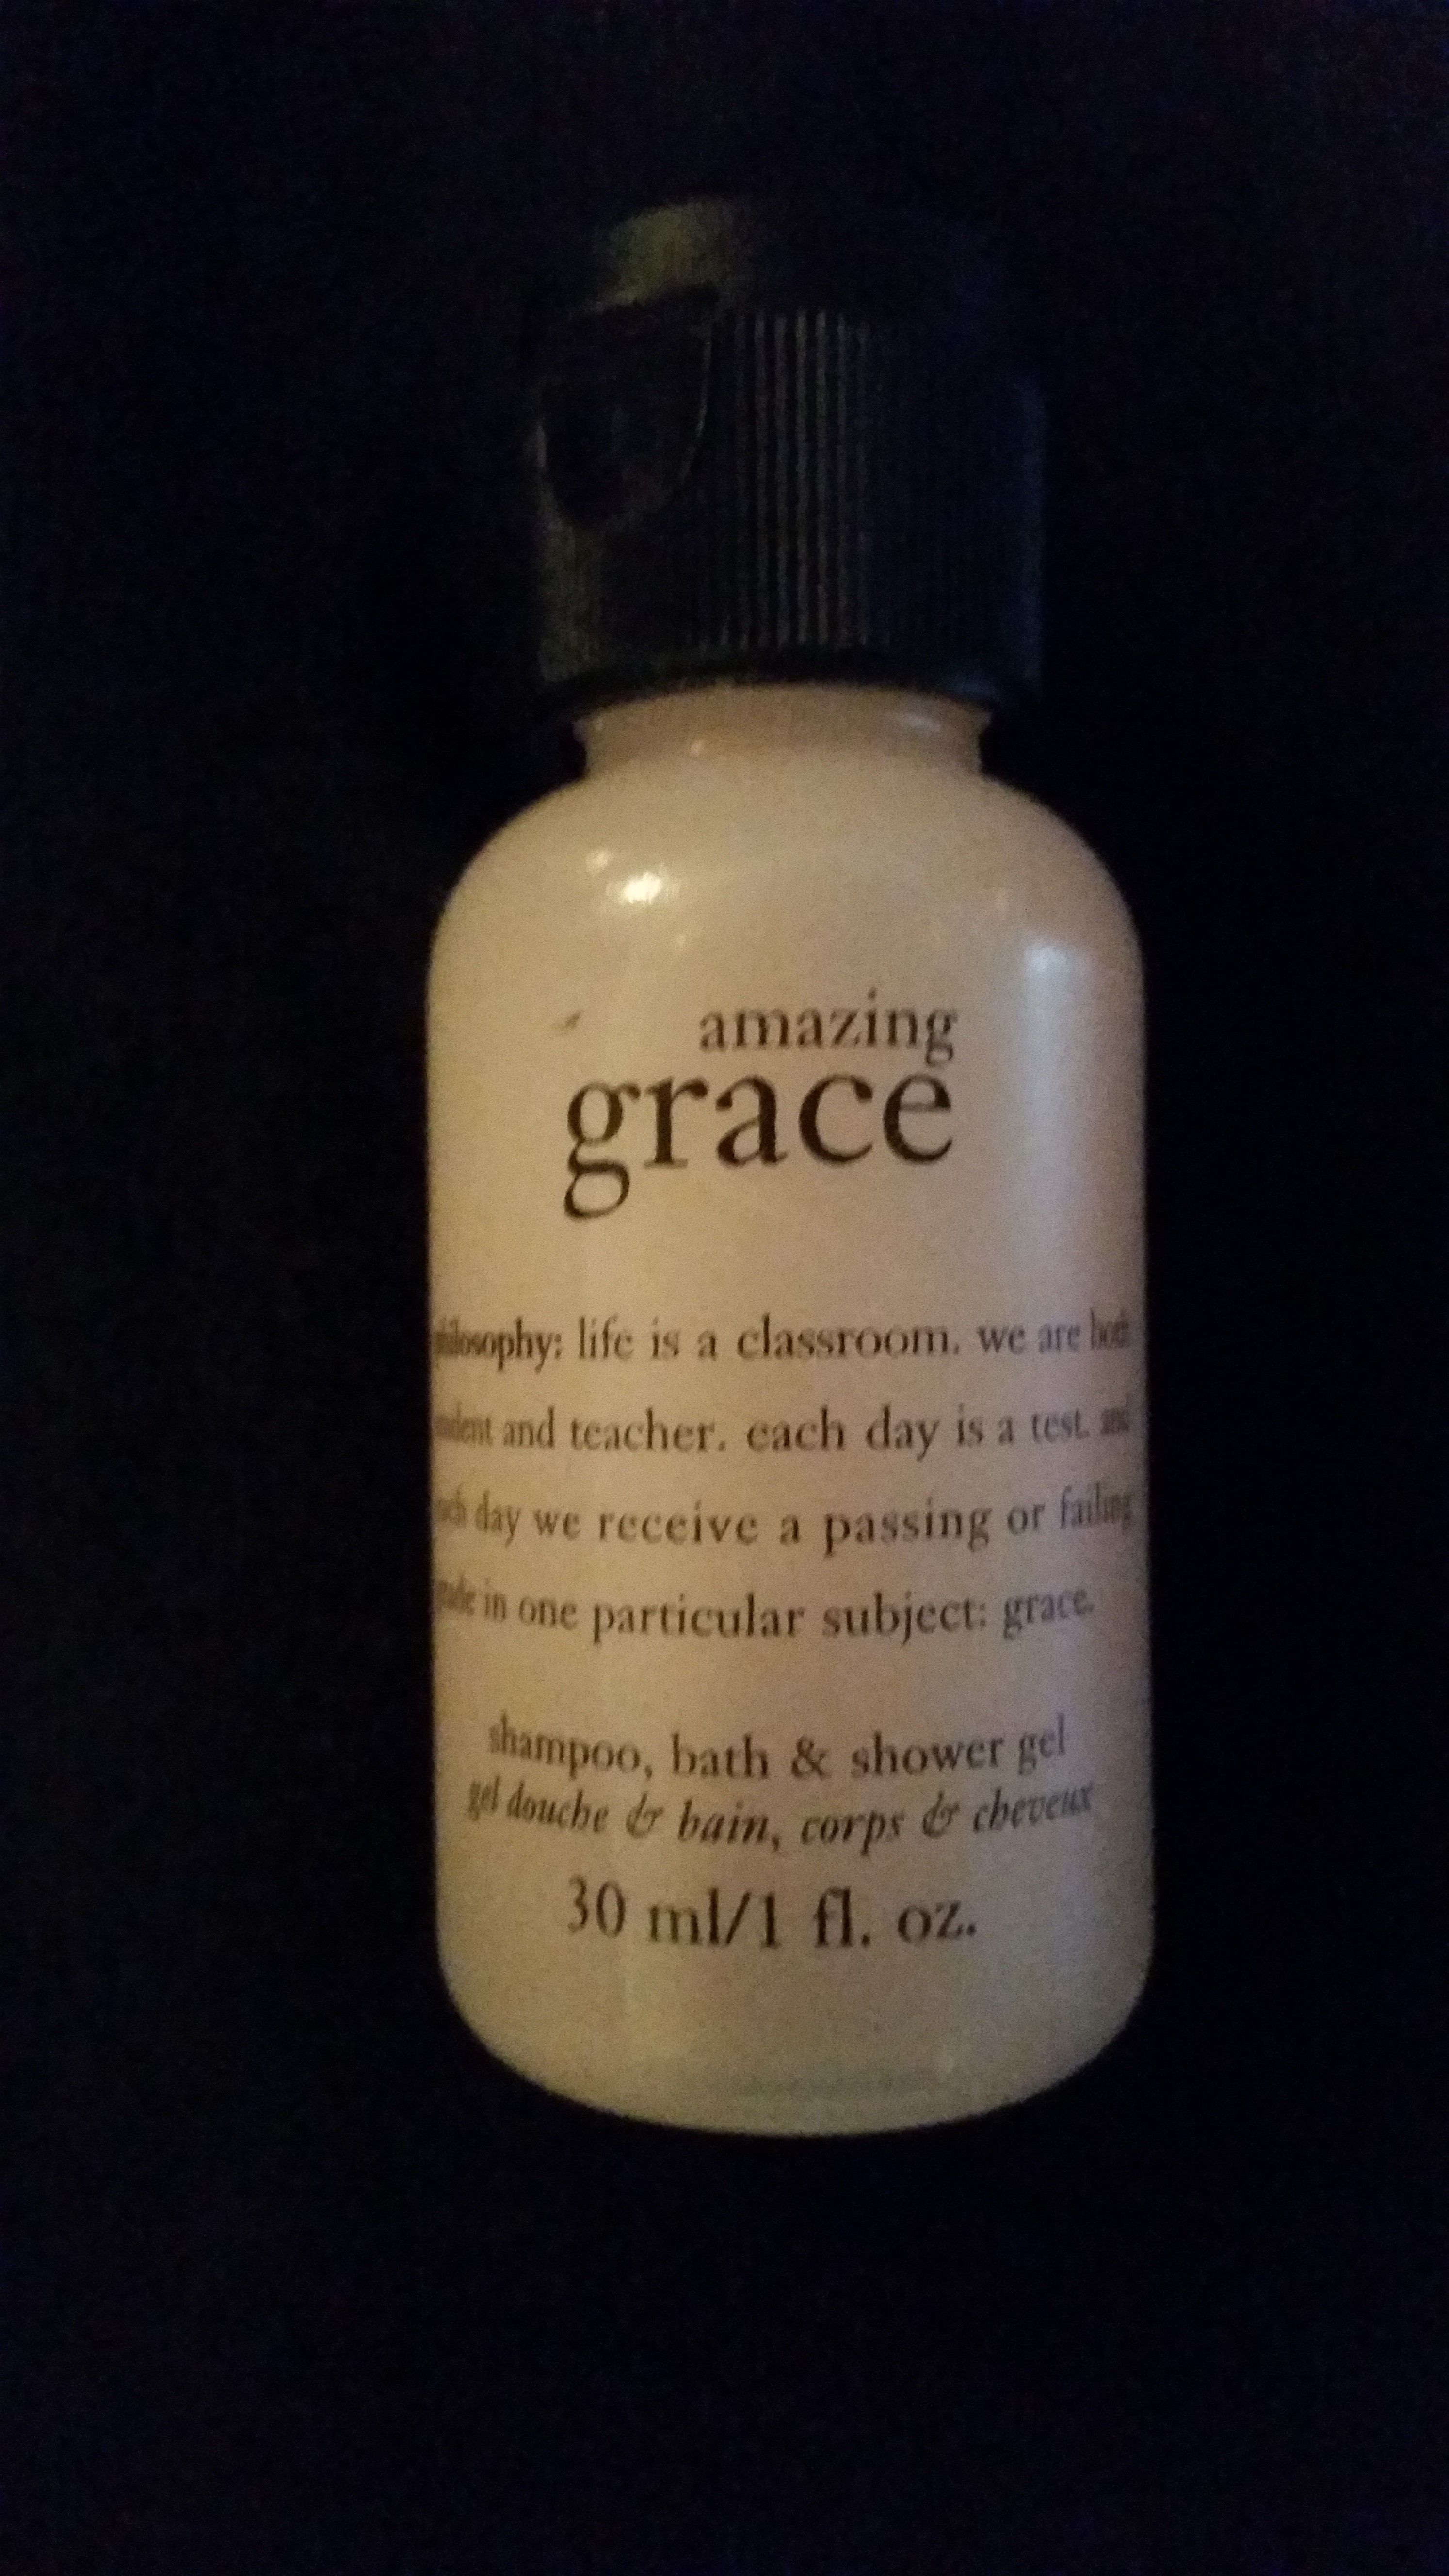 """I got this free from Smiley360 and love the quote.  It says """"life is a classroom. we are both student and teacher. each day is a test and each day we receive a passing or failing grade in one particular subject: grace."""""""